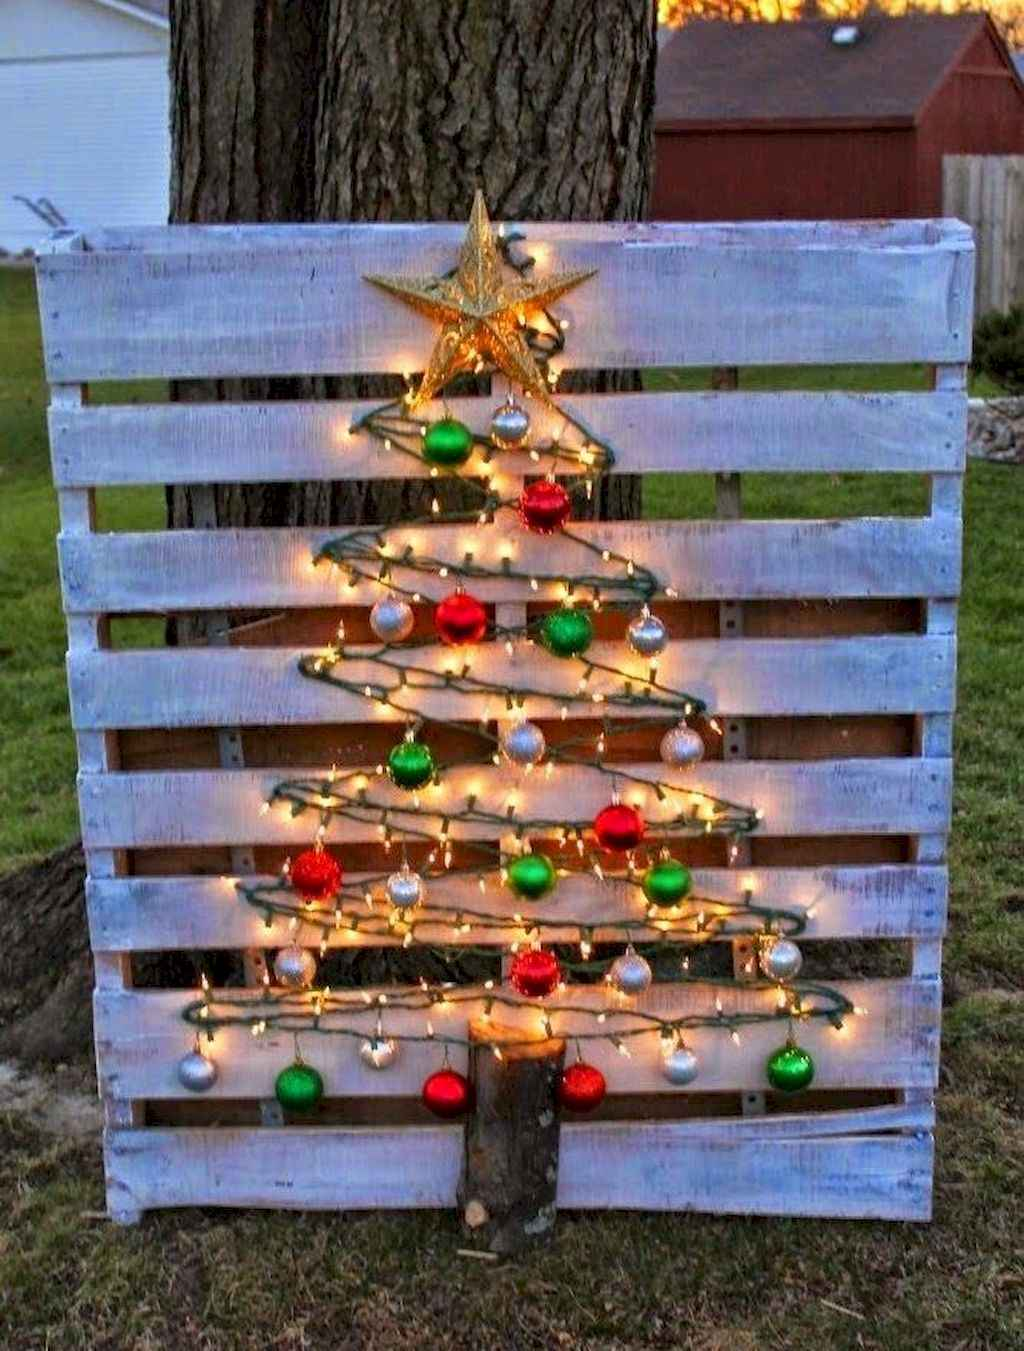 28 outdoor christmas decorations ideas (23). Published December 9, 2017 at 1024 × 1351 in 28 Outdoor Christmas Decorations Ideas